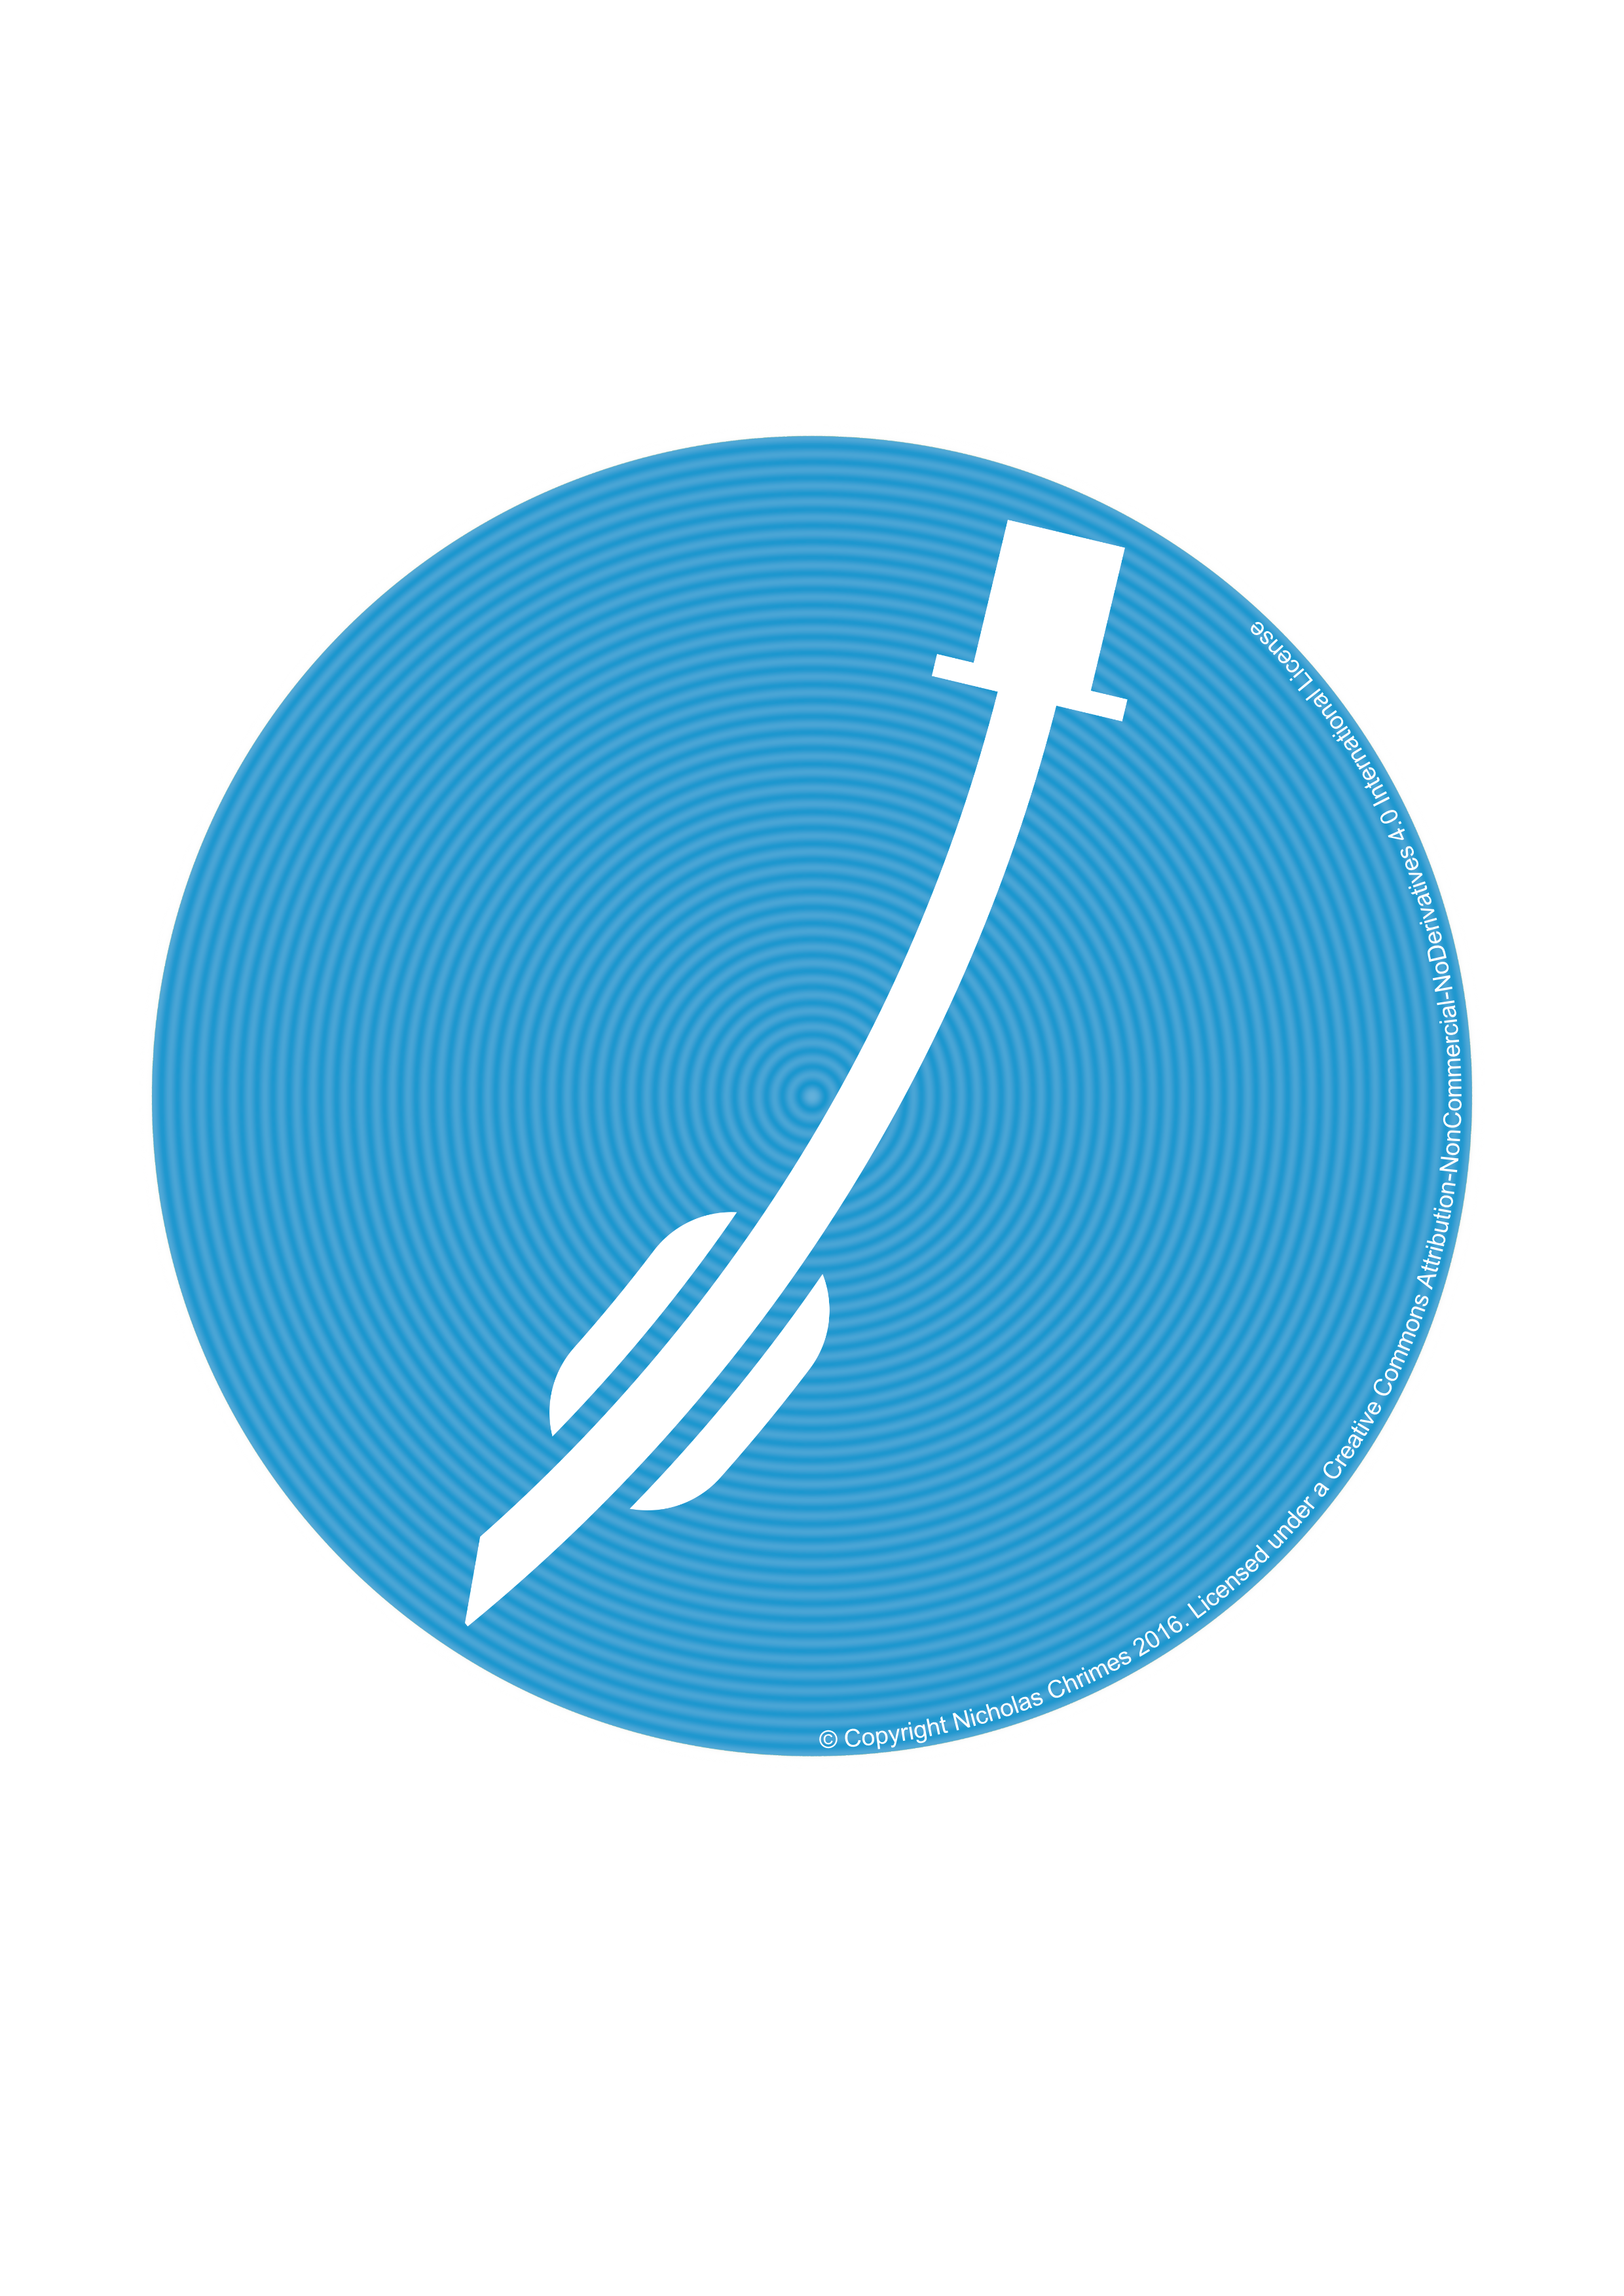 Endotracheal Tube Icon - without text